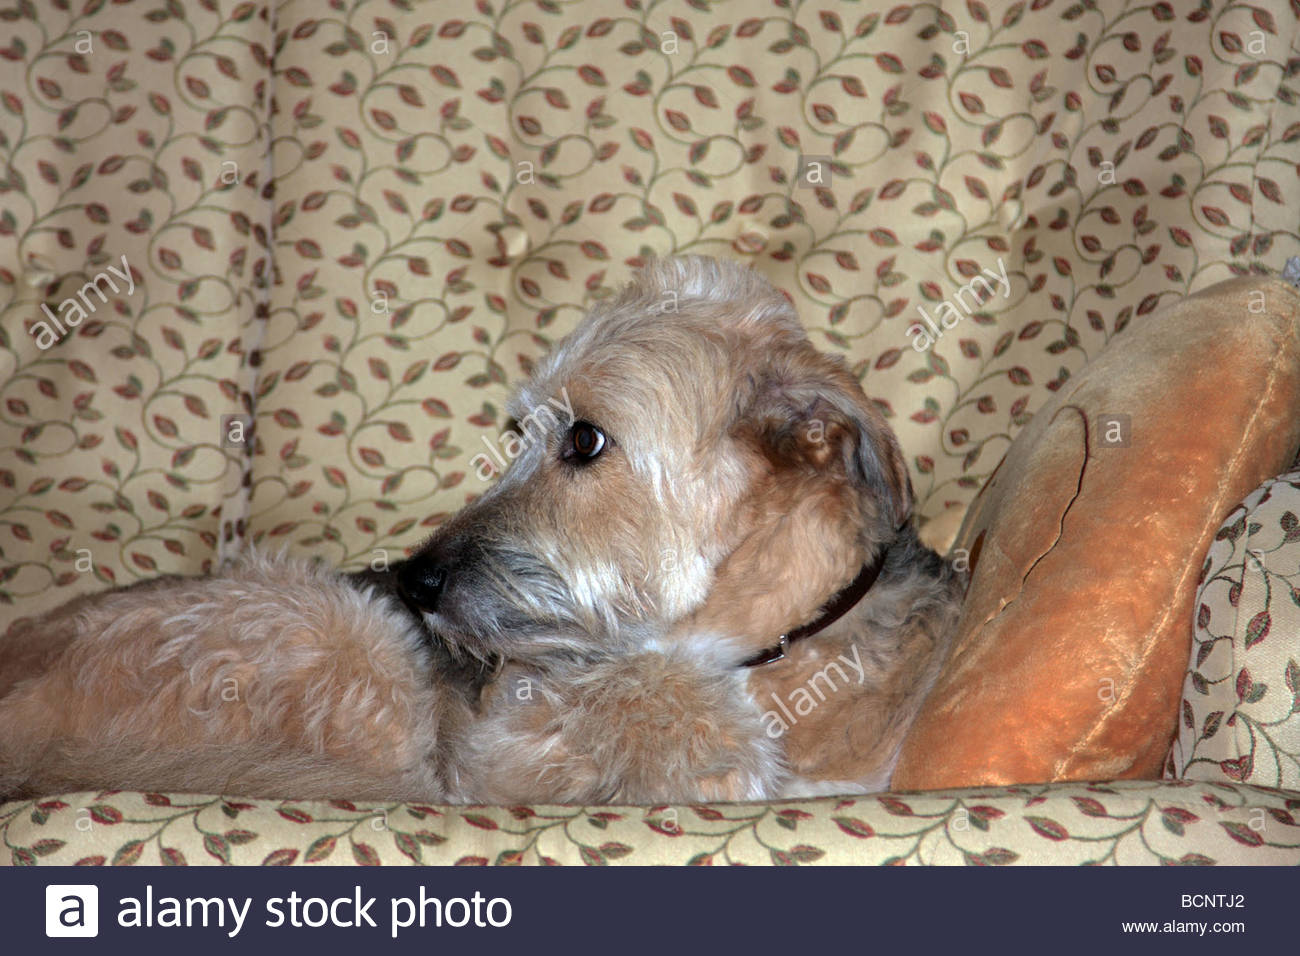 Pampered Dog Looking Expectantly on a Settee - Stock Image